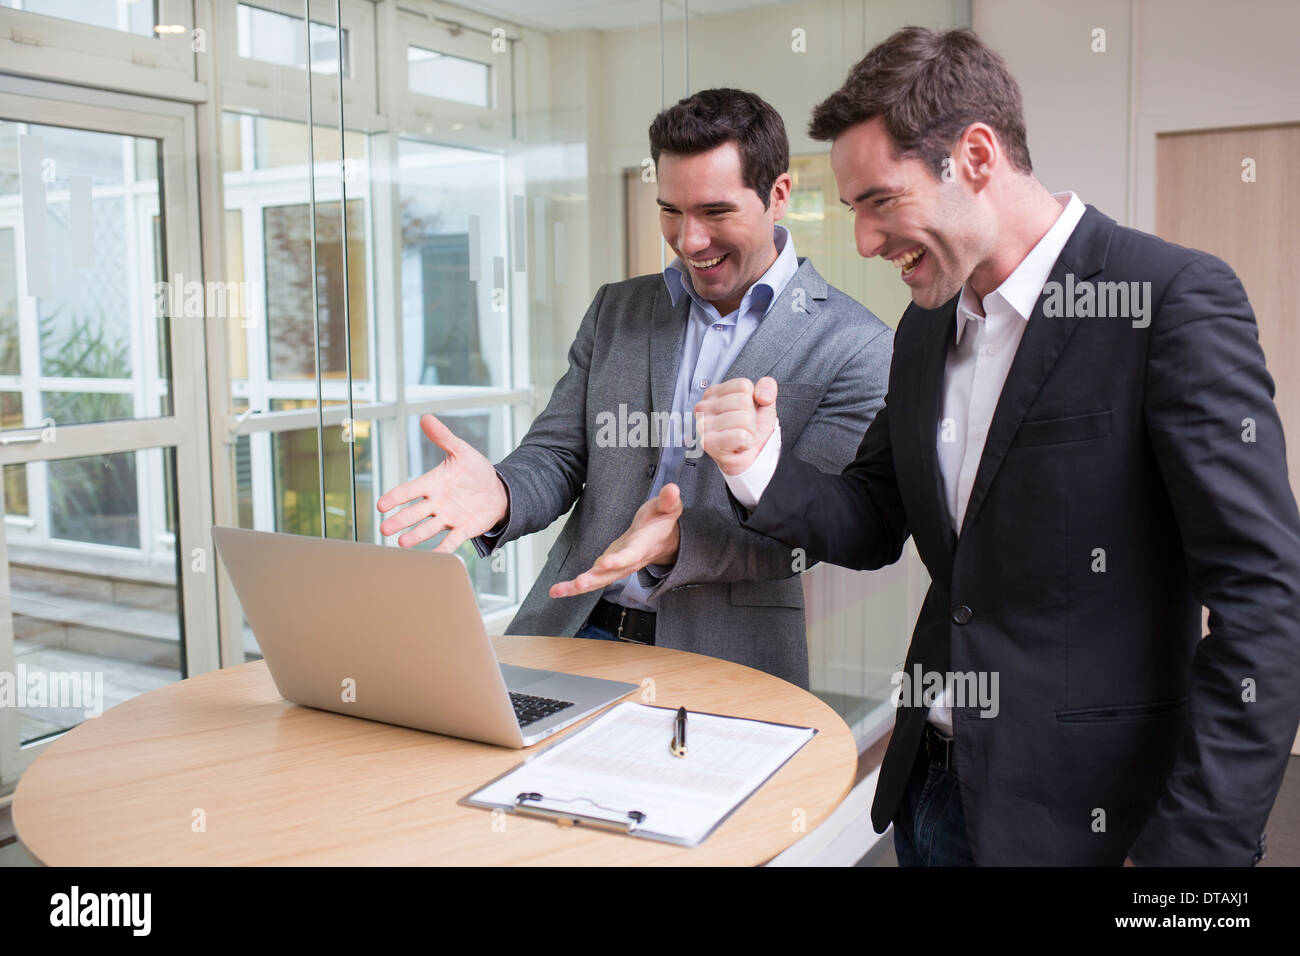 Successful smiling businessman in office, with arms up - Stock Image